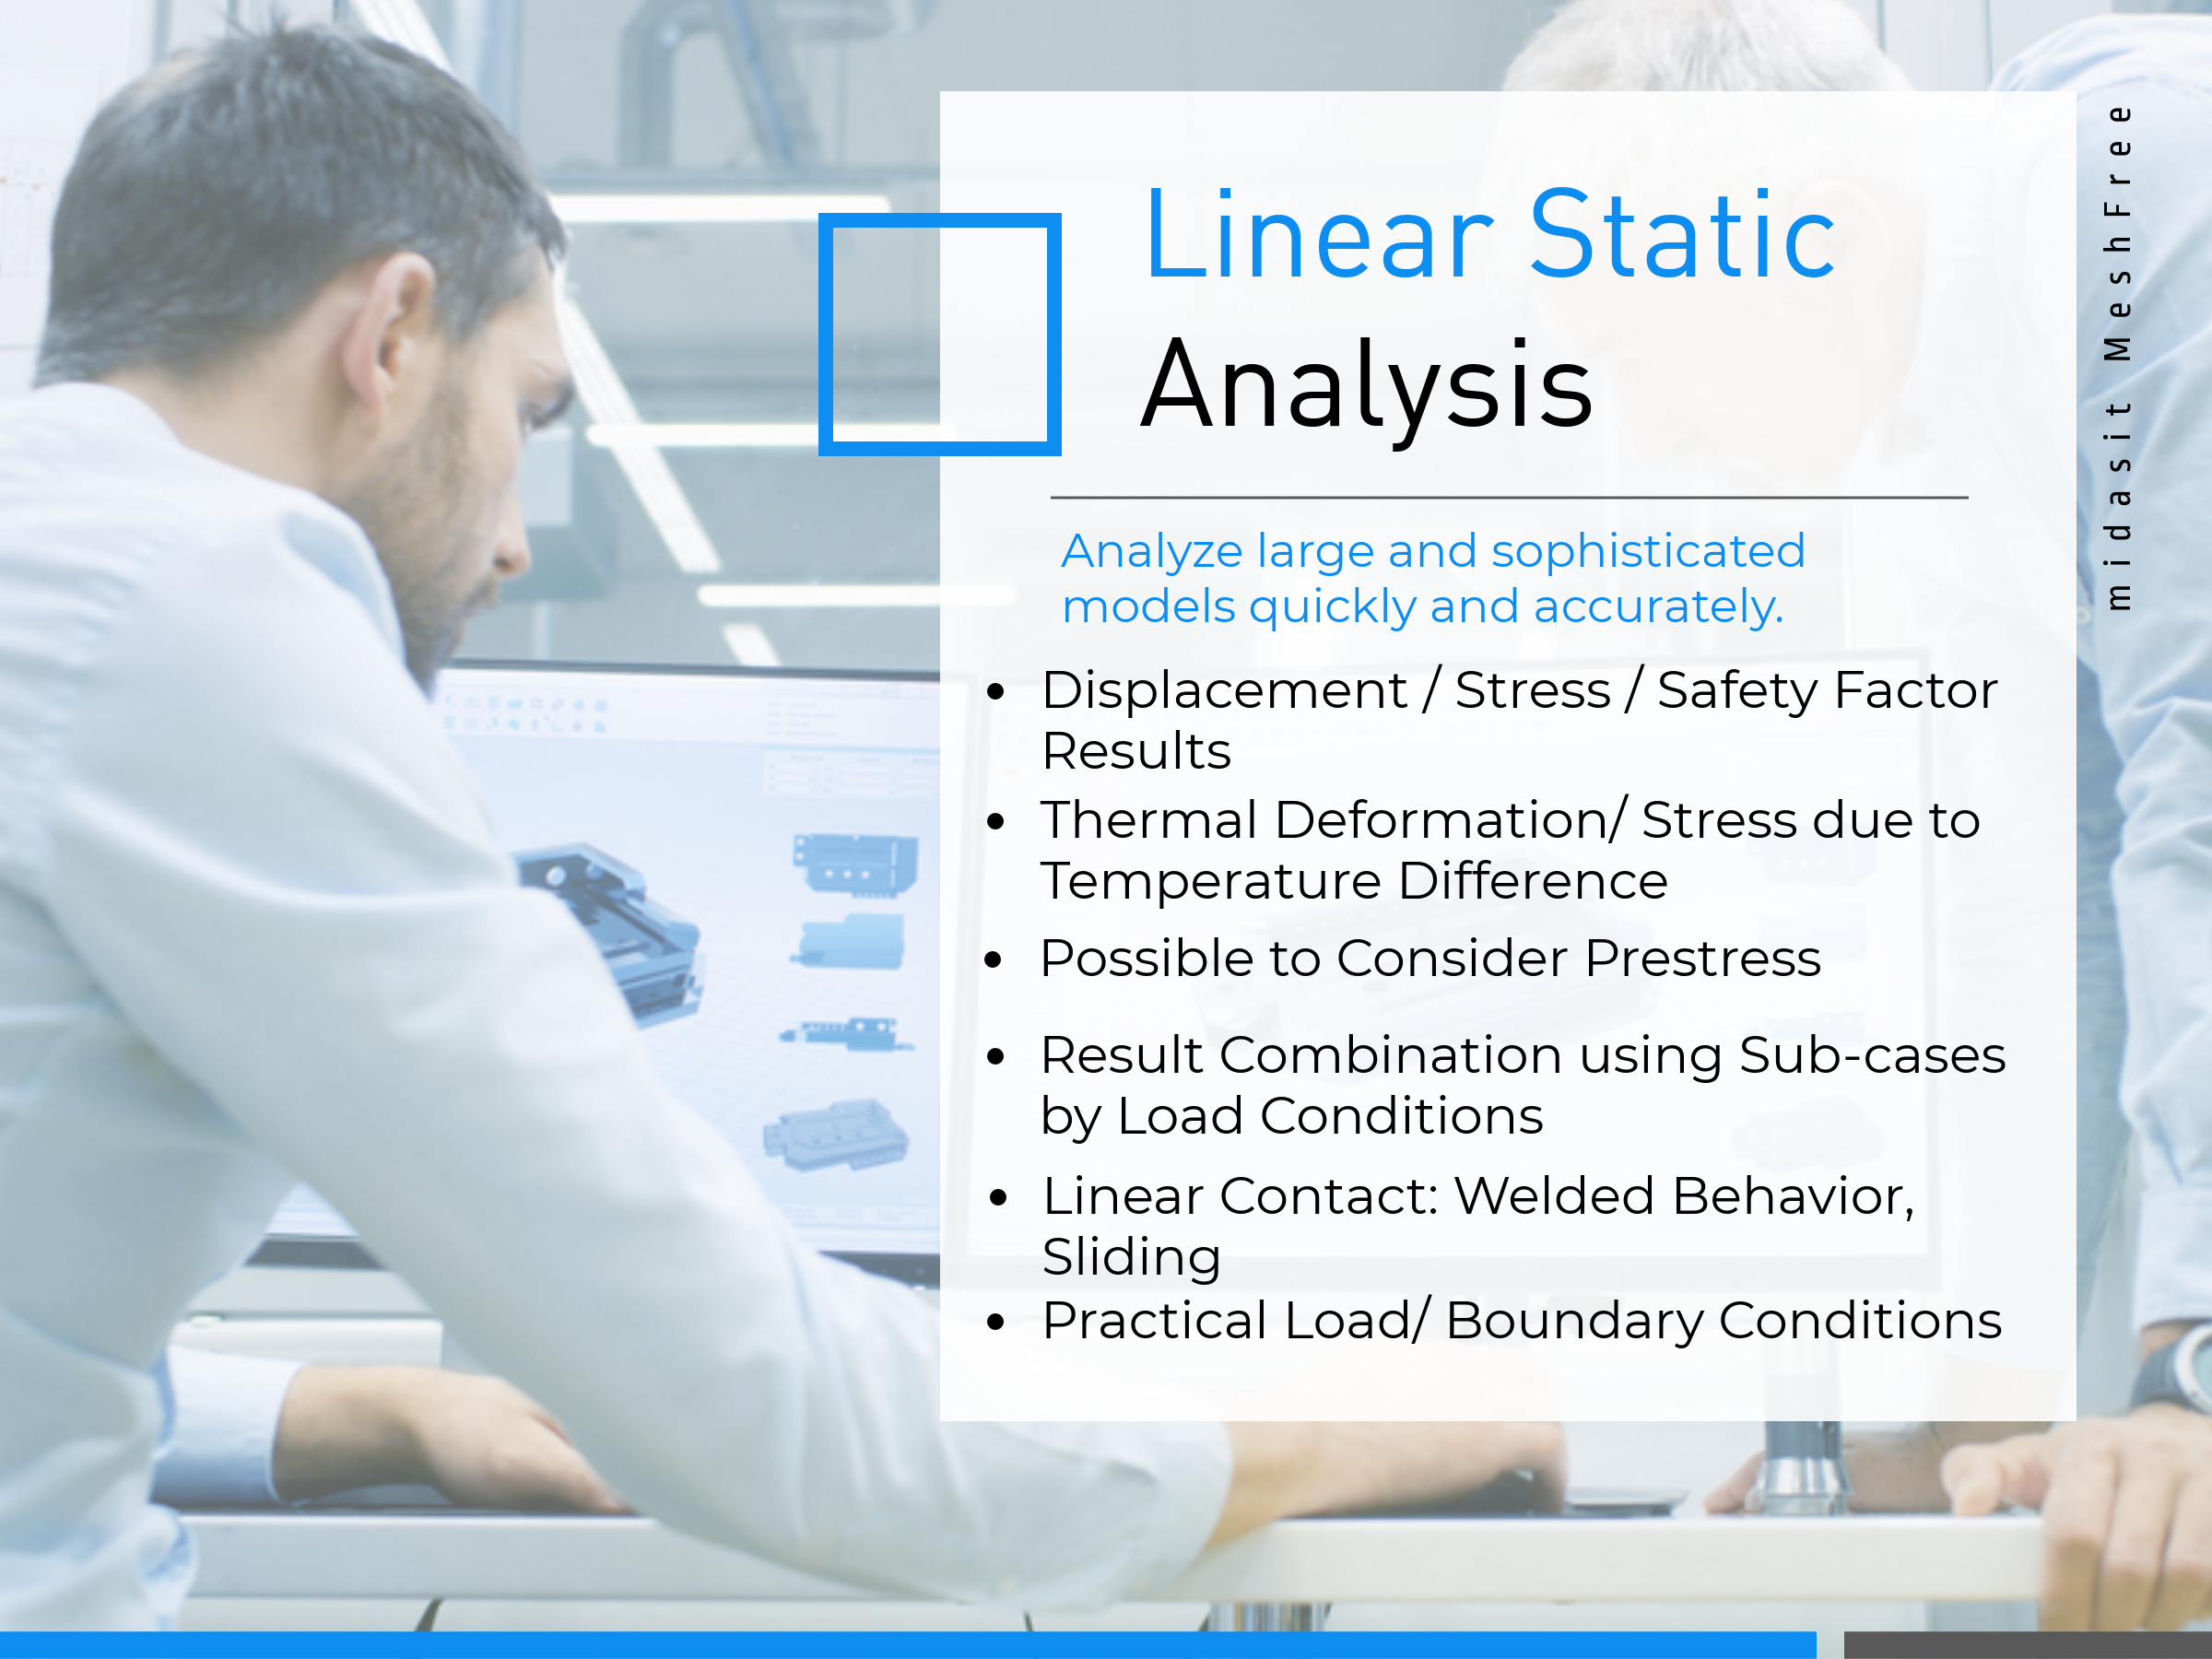 Linear Static Analysis Features on MeshFree (Slide 2)